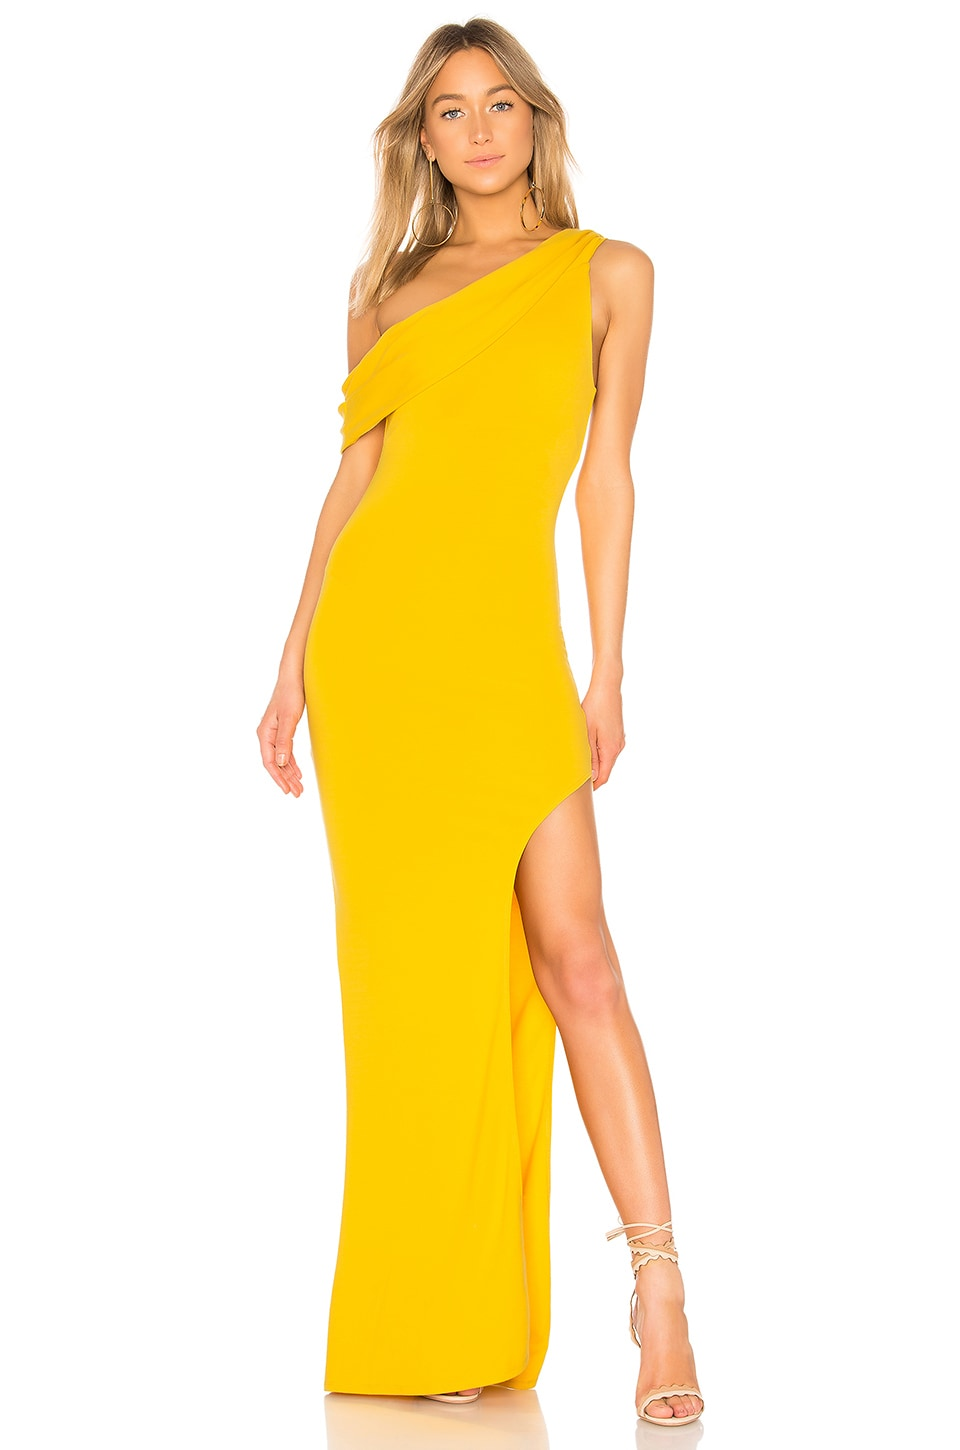 Lovers + Friends Marigold Gown in Marigold